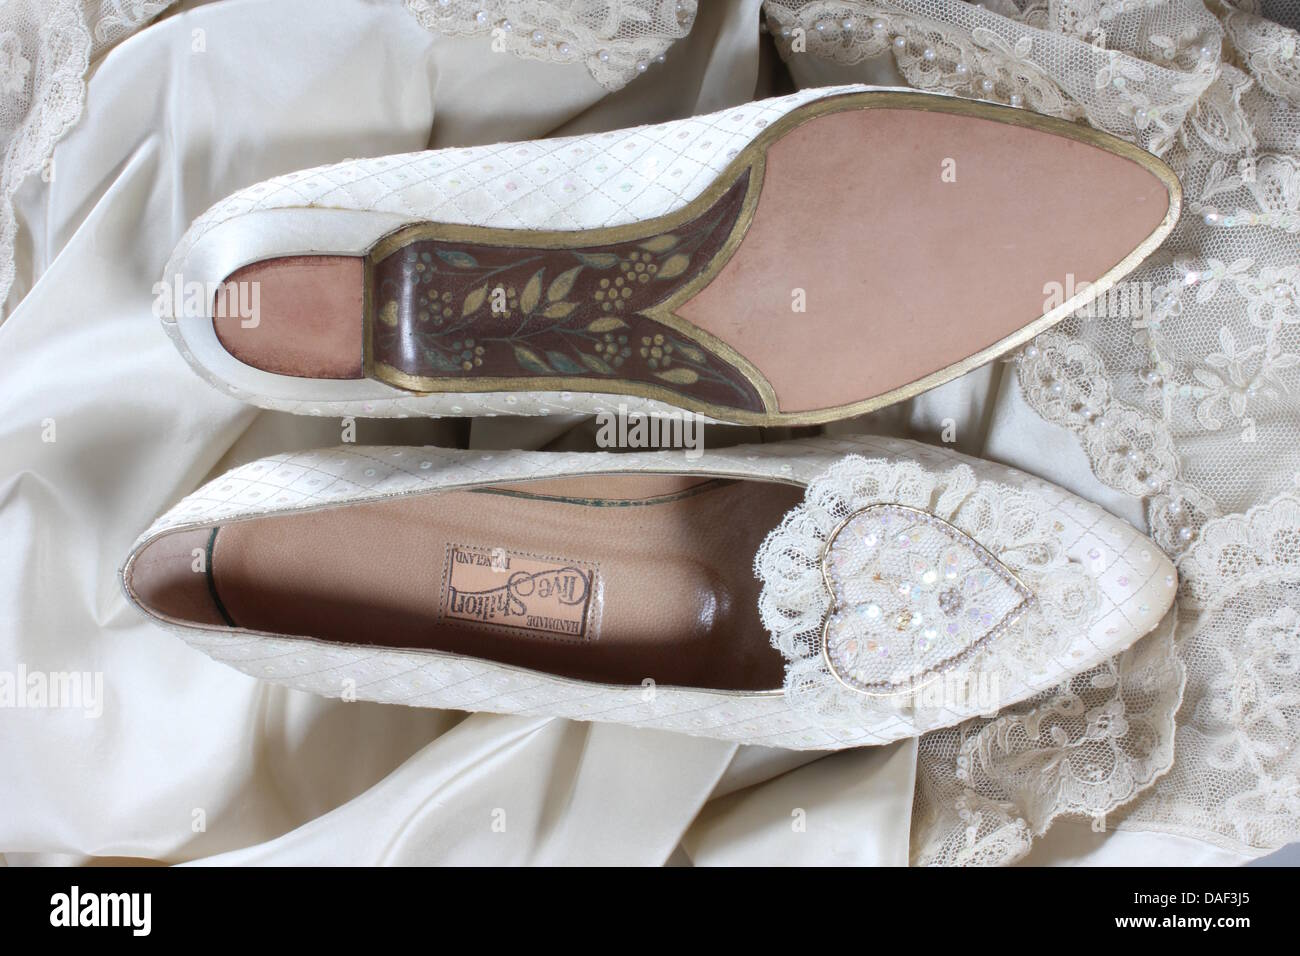 Princess Diana Shoes Stock Photos & Princess Diana Shoes ...